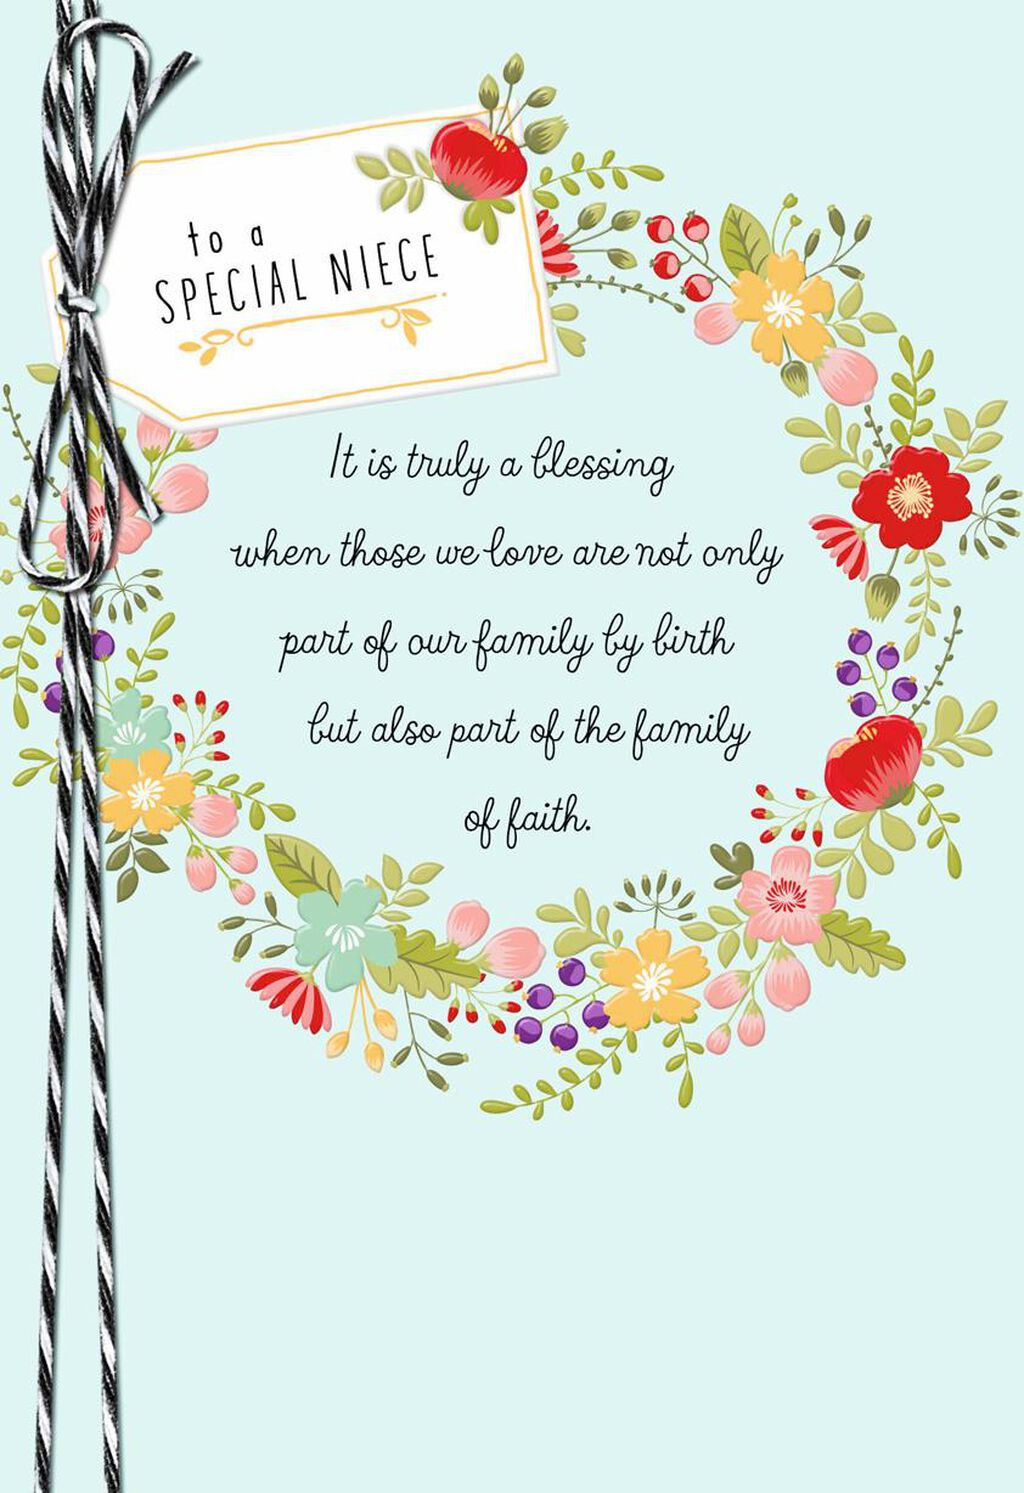 Floral Wreath Religious Confirmation Card For Niece Greeting Cards